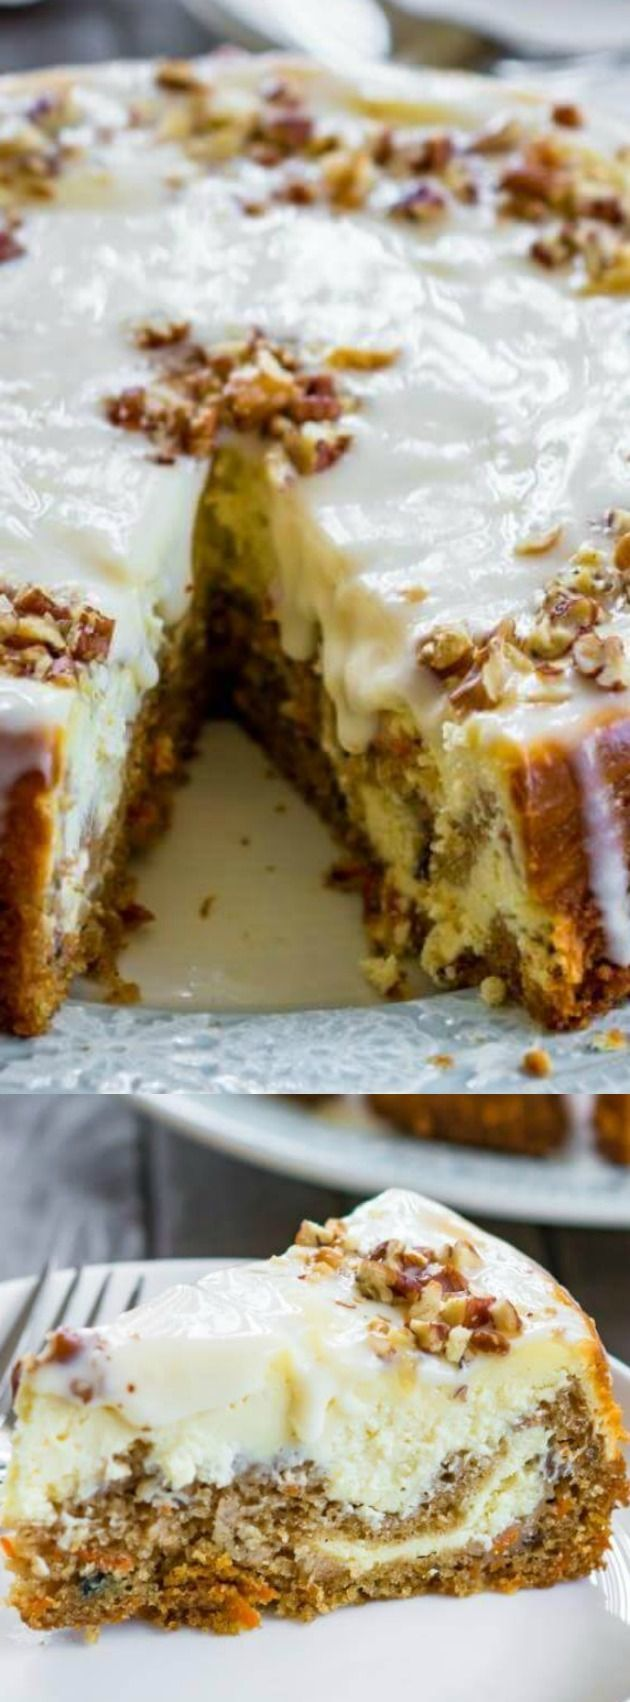 Top chef carrot cake recipe